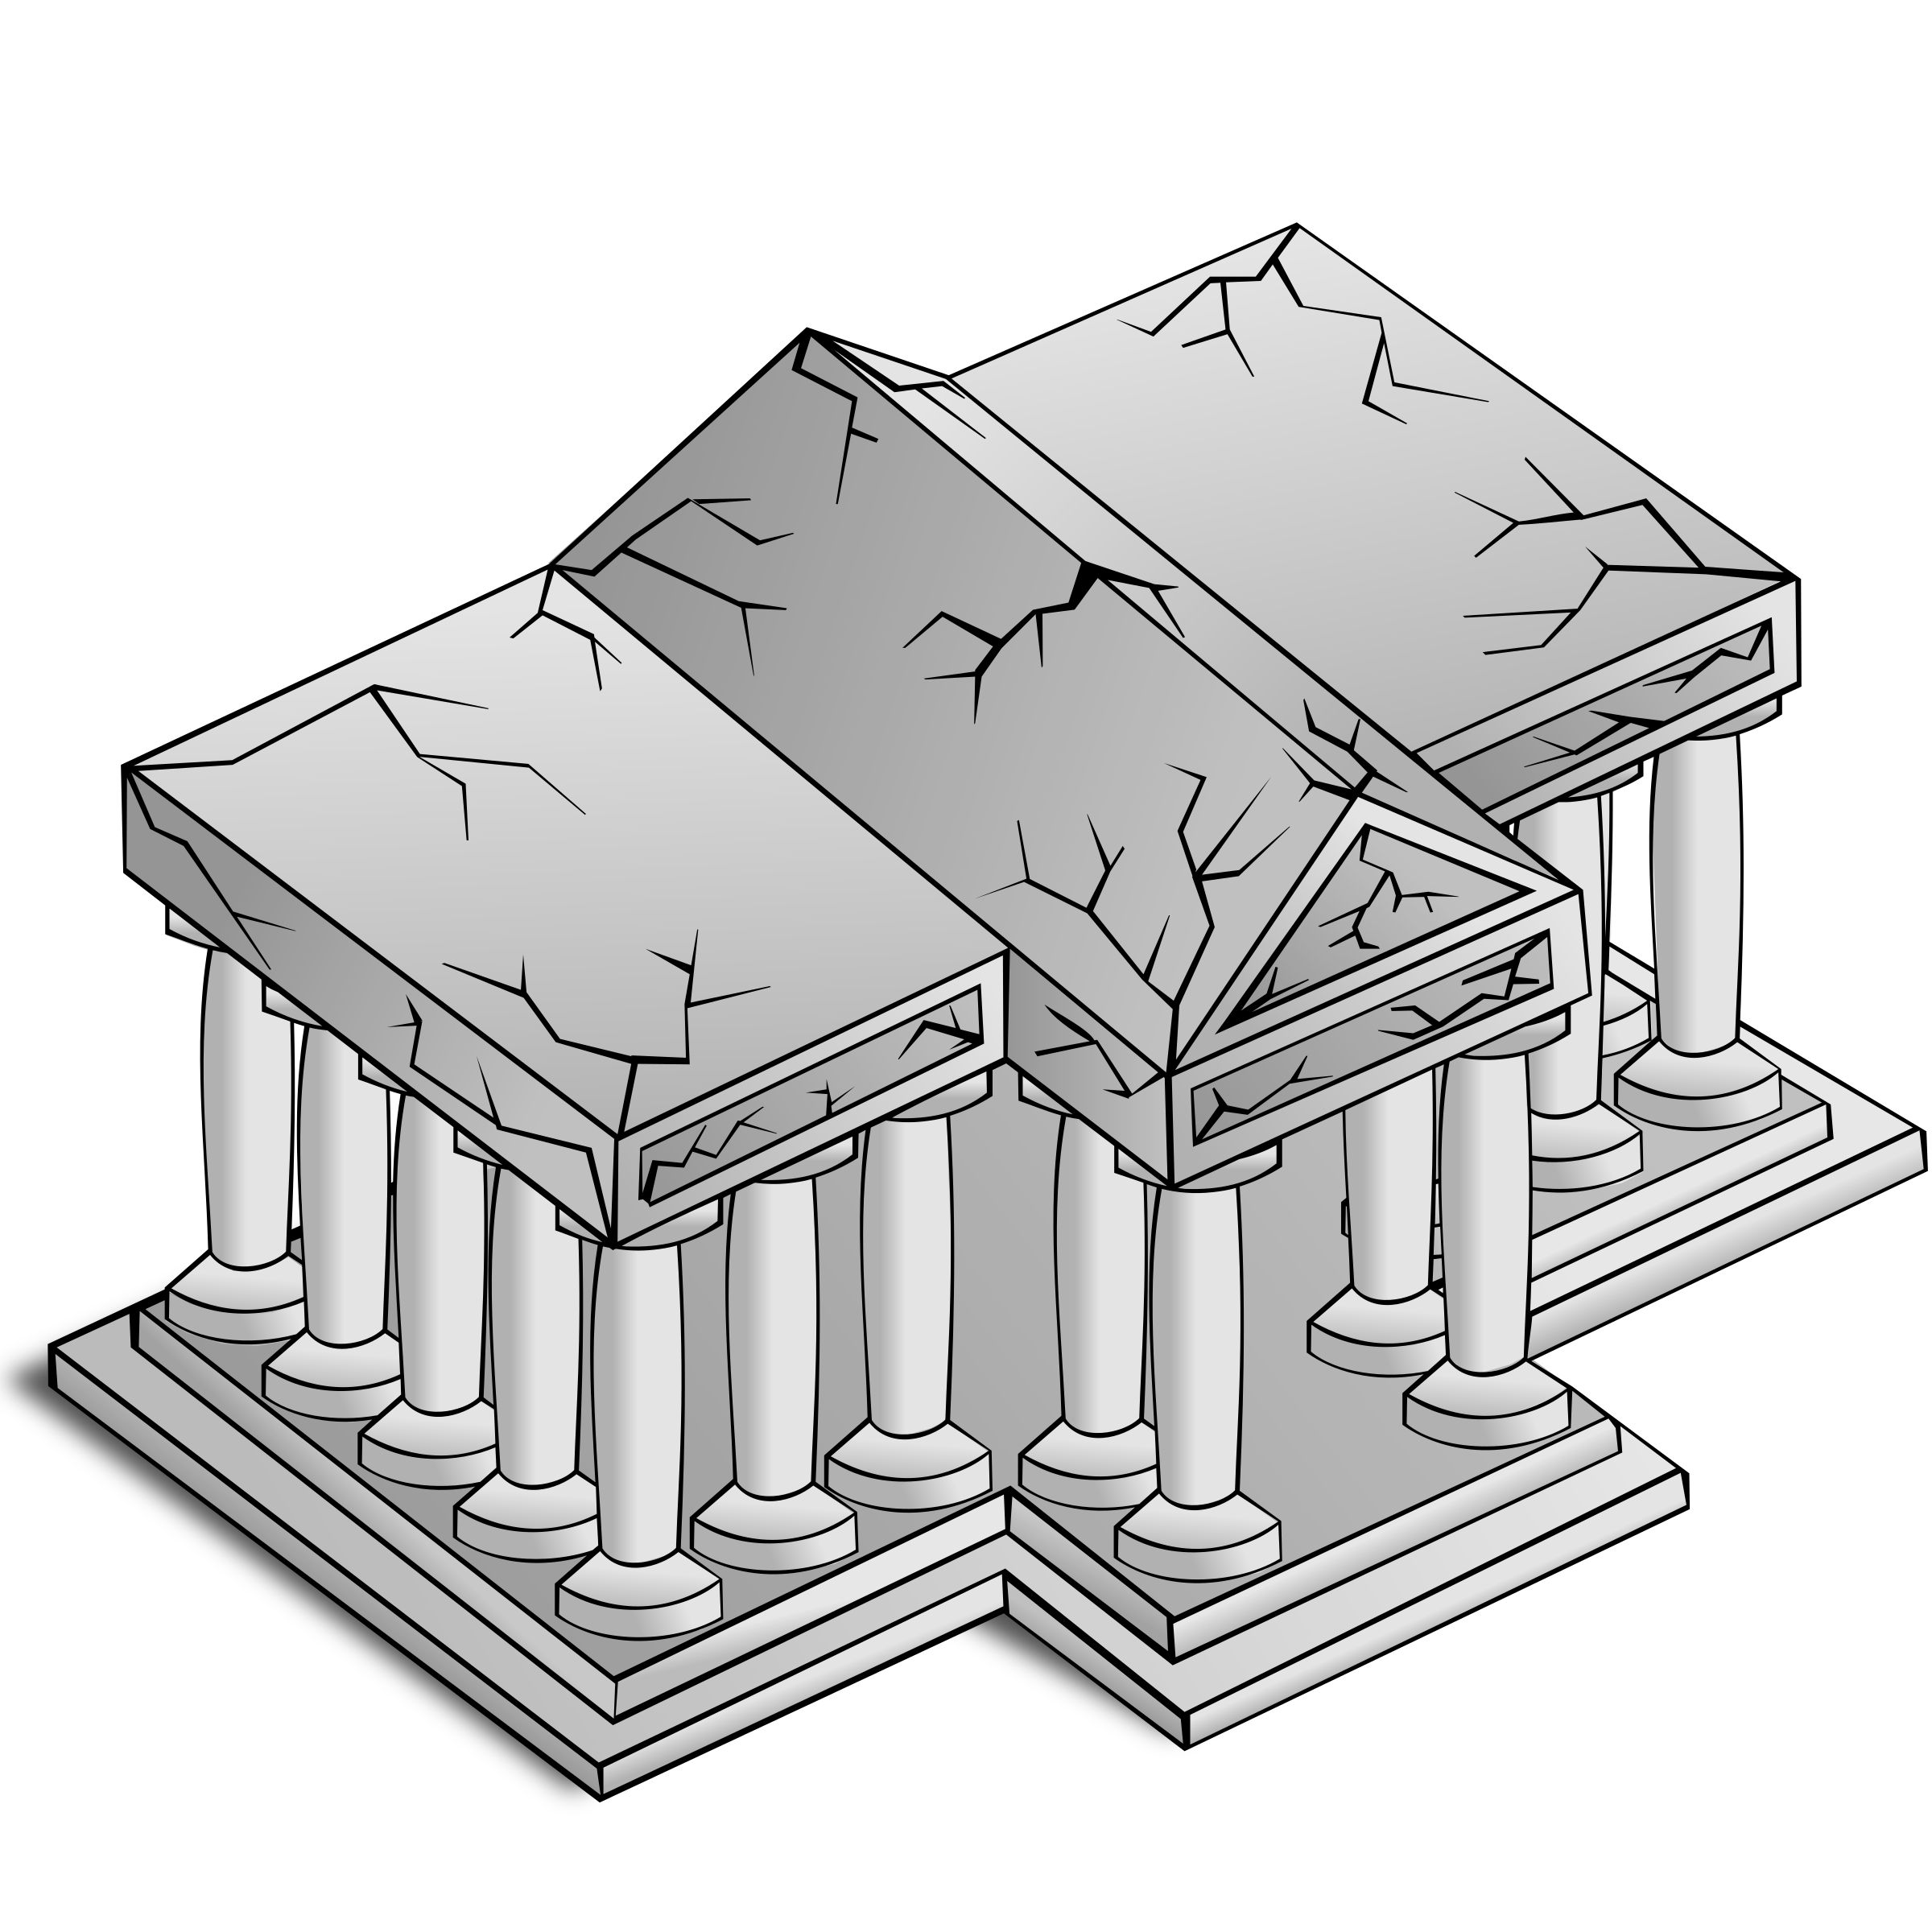 Greek clipart greek pillar. Rpg map symbols university